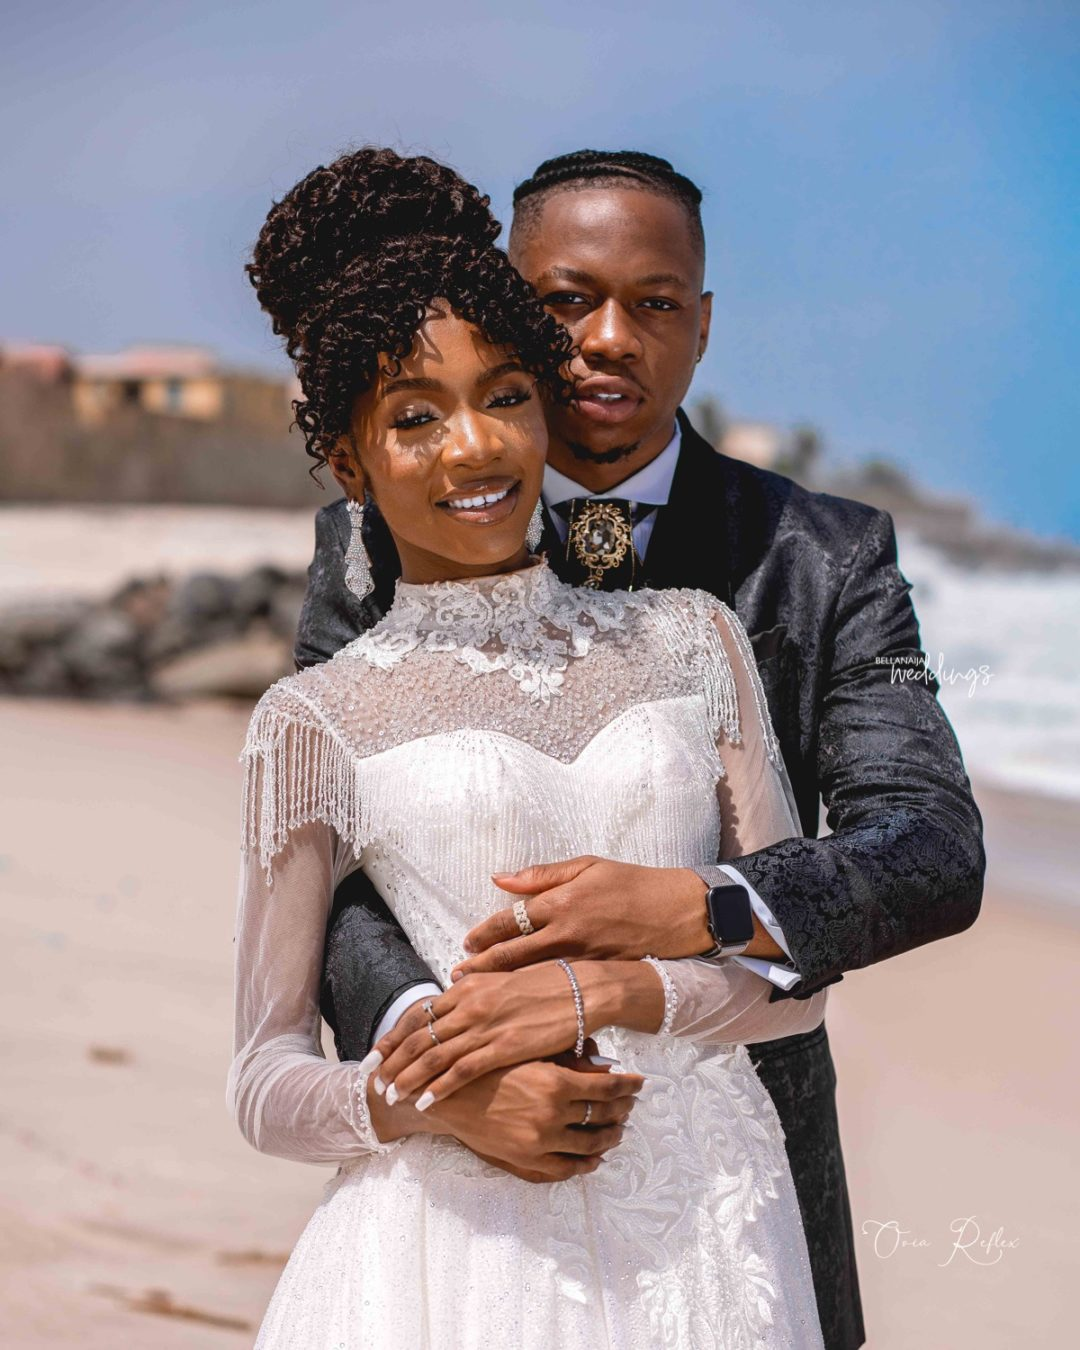 15 Outdoor Wedding Ideas That Are Totally Genius: Ultimate Love Stars Theresa & Iyke Are Totally Giving Us